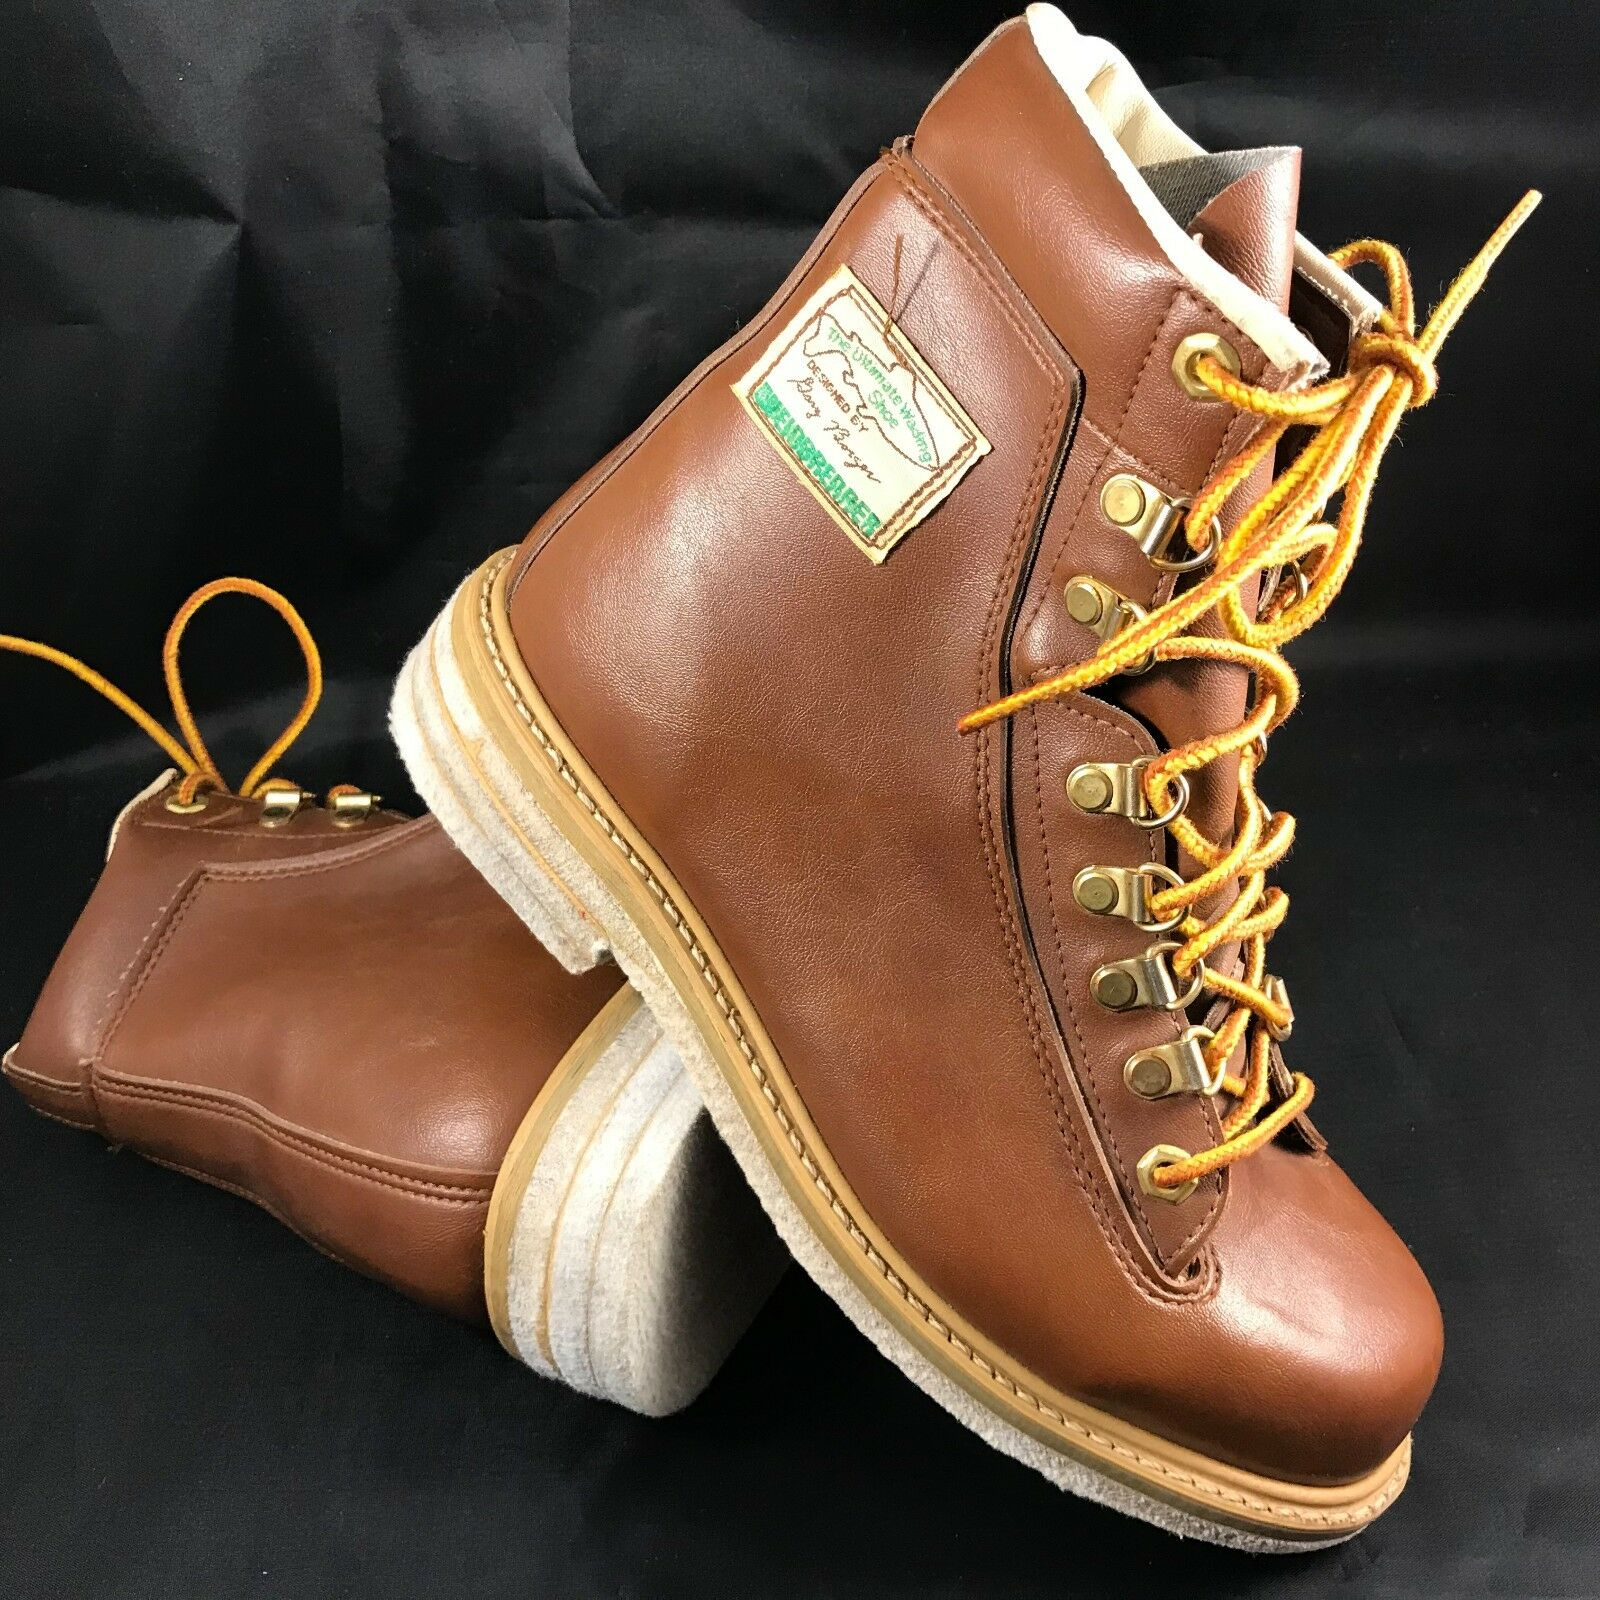 MINT Weinbrenner Ultimate Wading shoes Fishing Boots Gary Borger Felt Sole